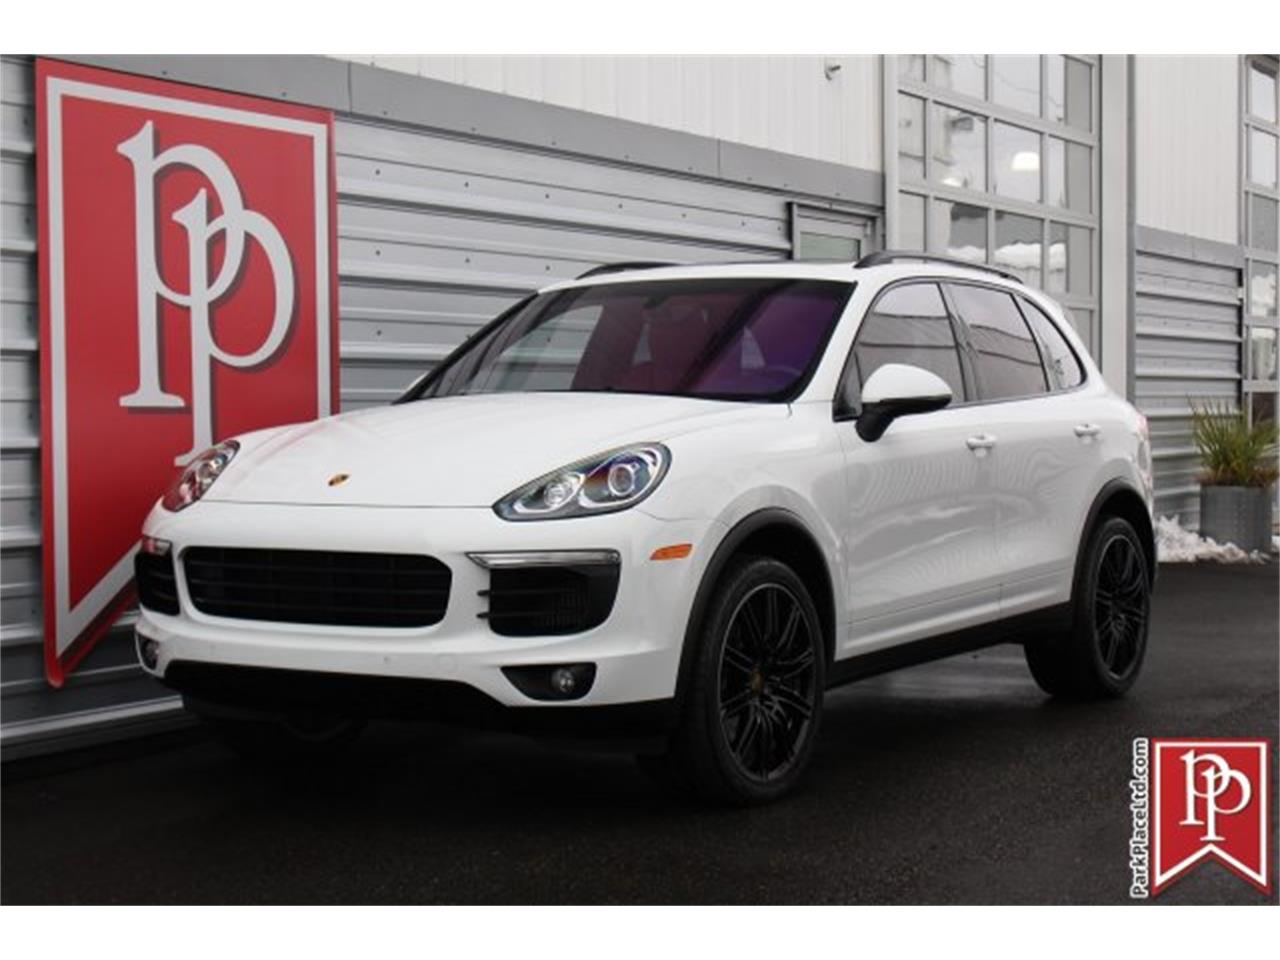 2015 Porsche Cayenne for sale in Bellevue, WA – photo 2